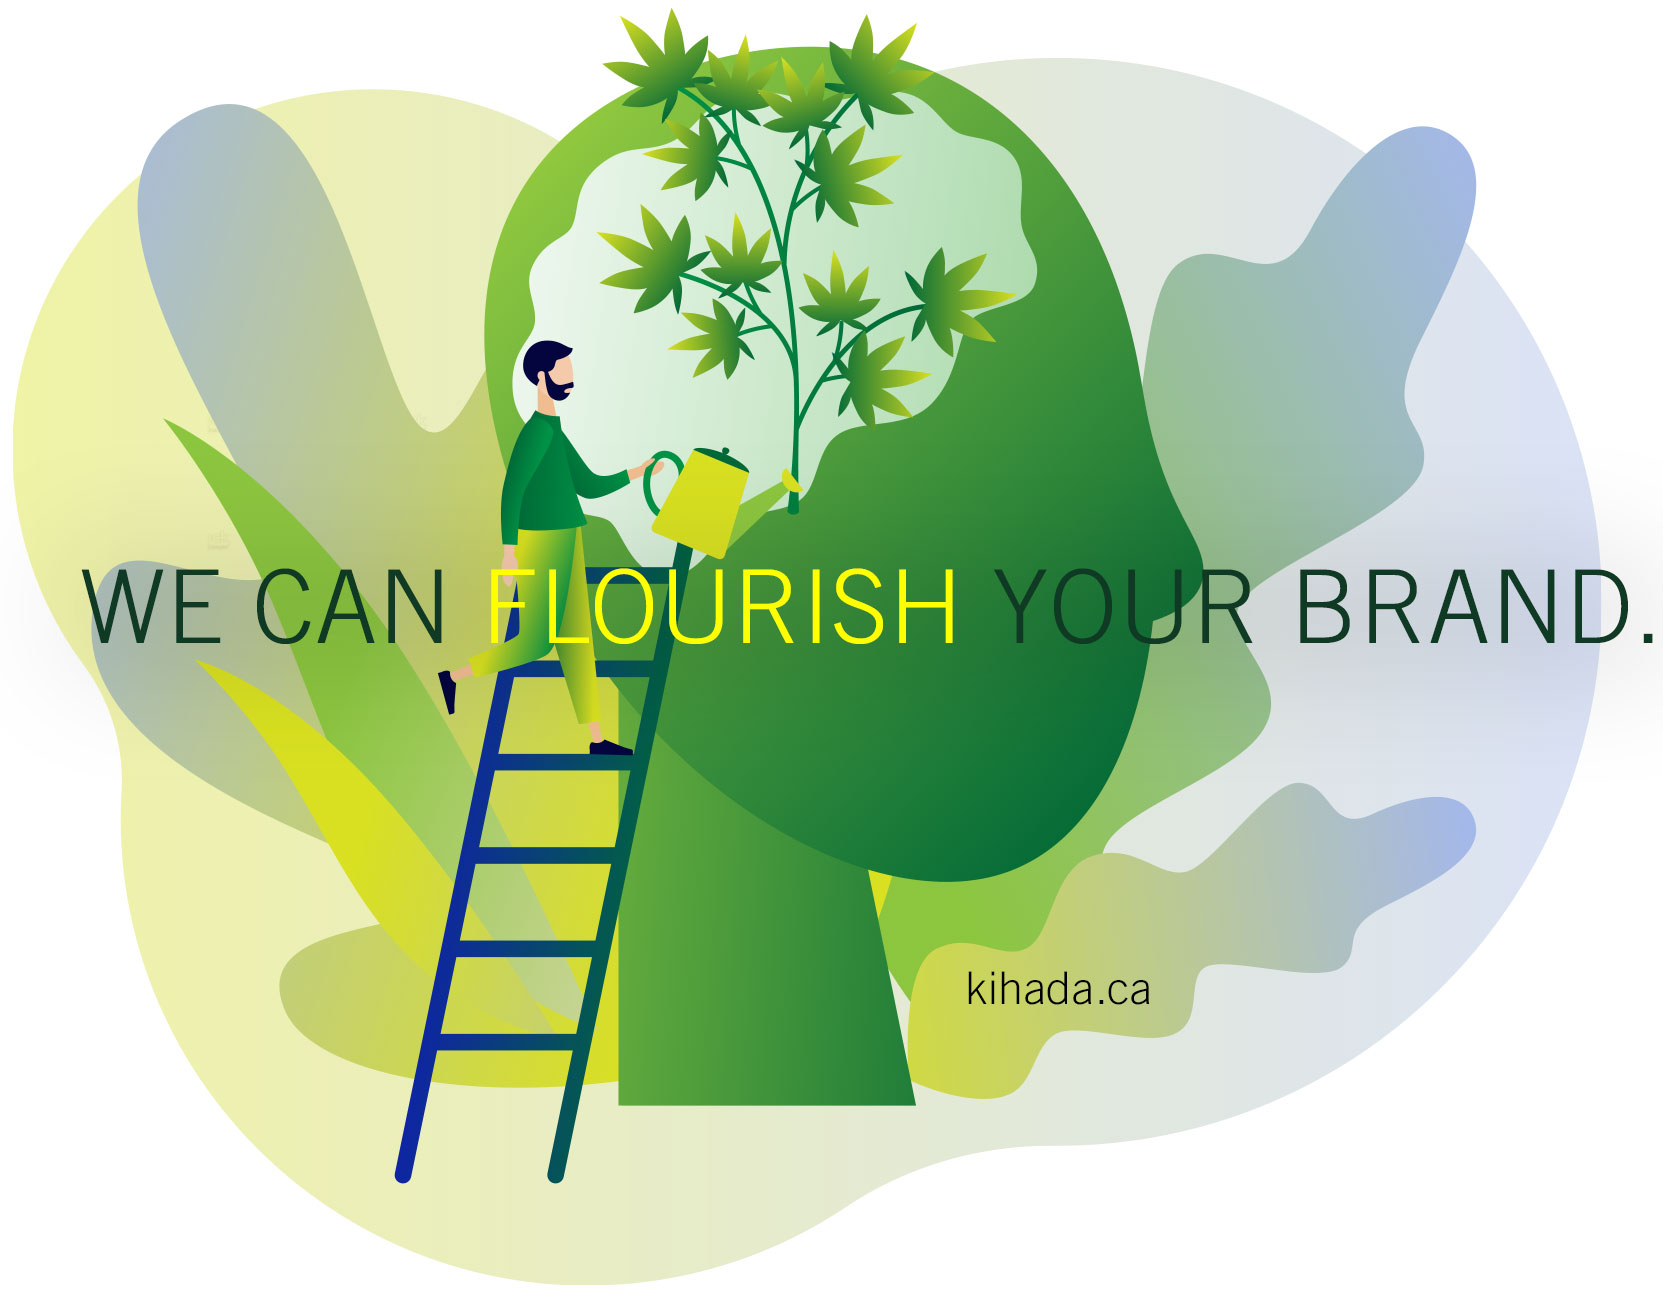 We Can Flourish Your Brand